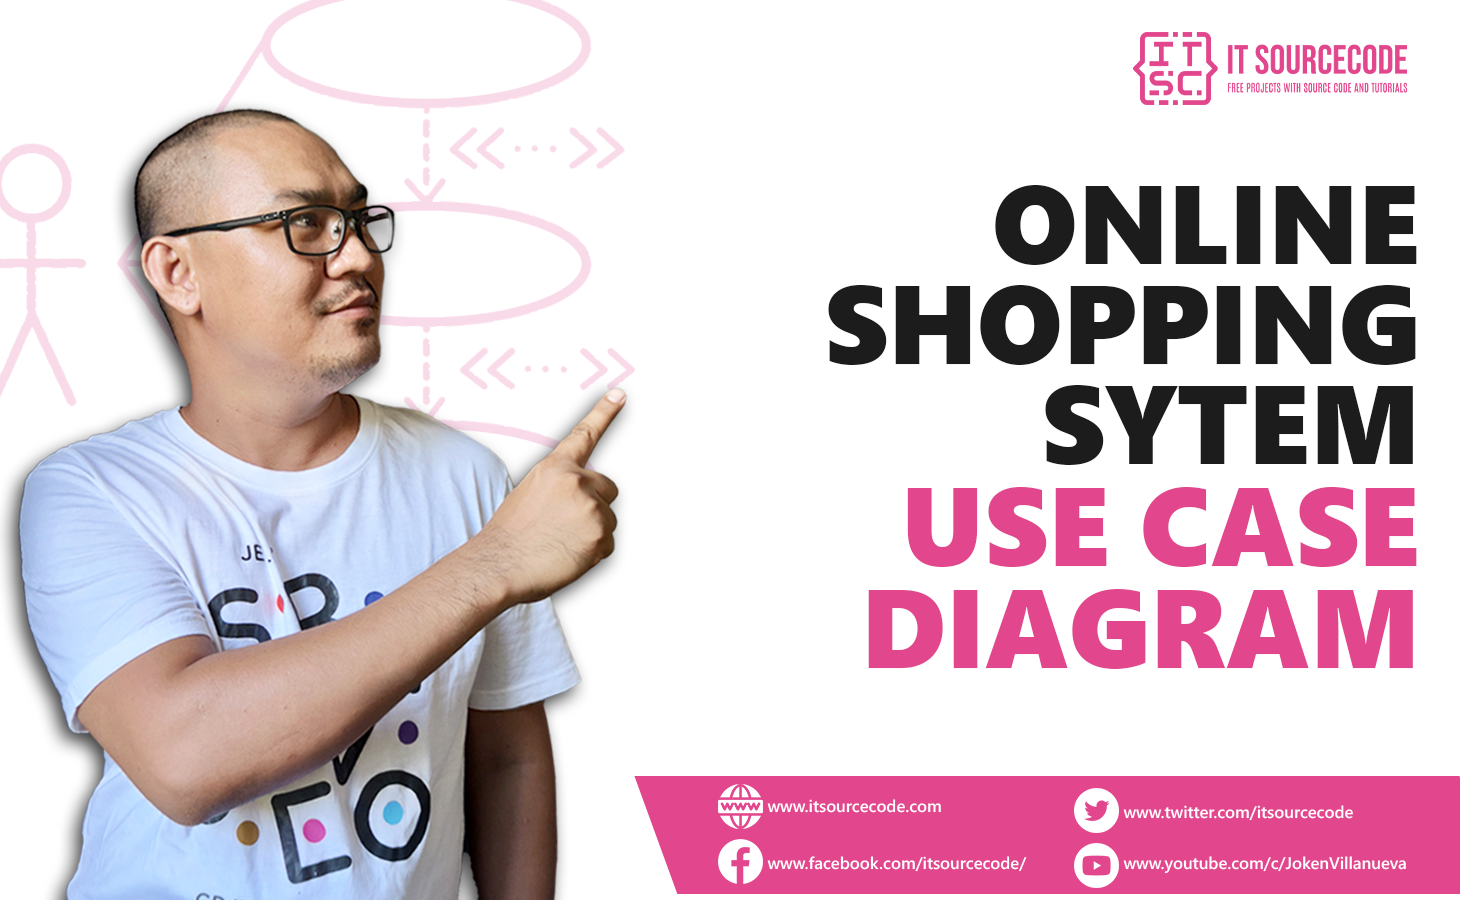 Online Shopping System Use Case Diagram